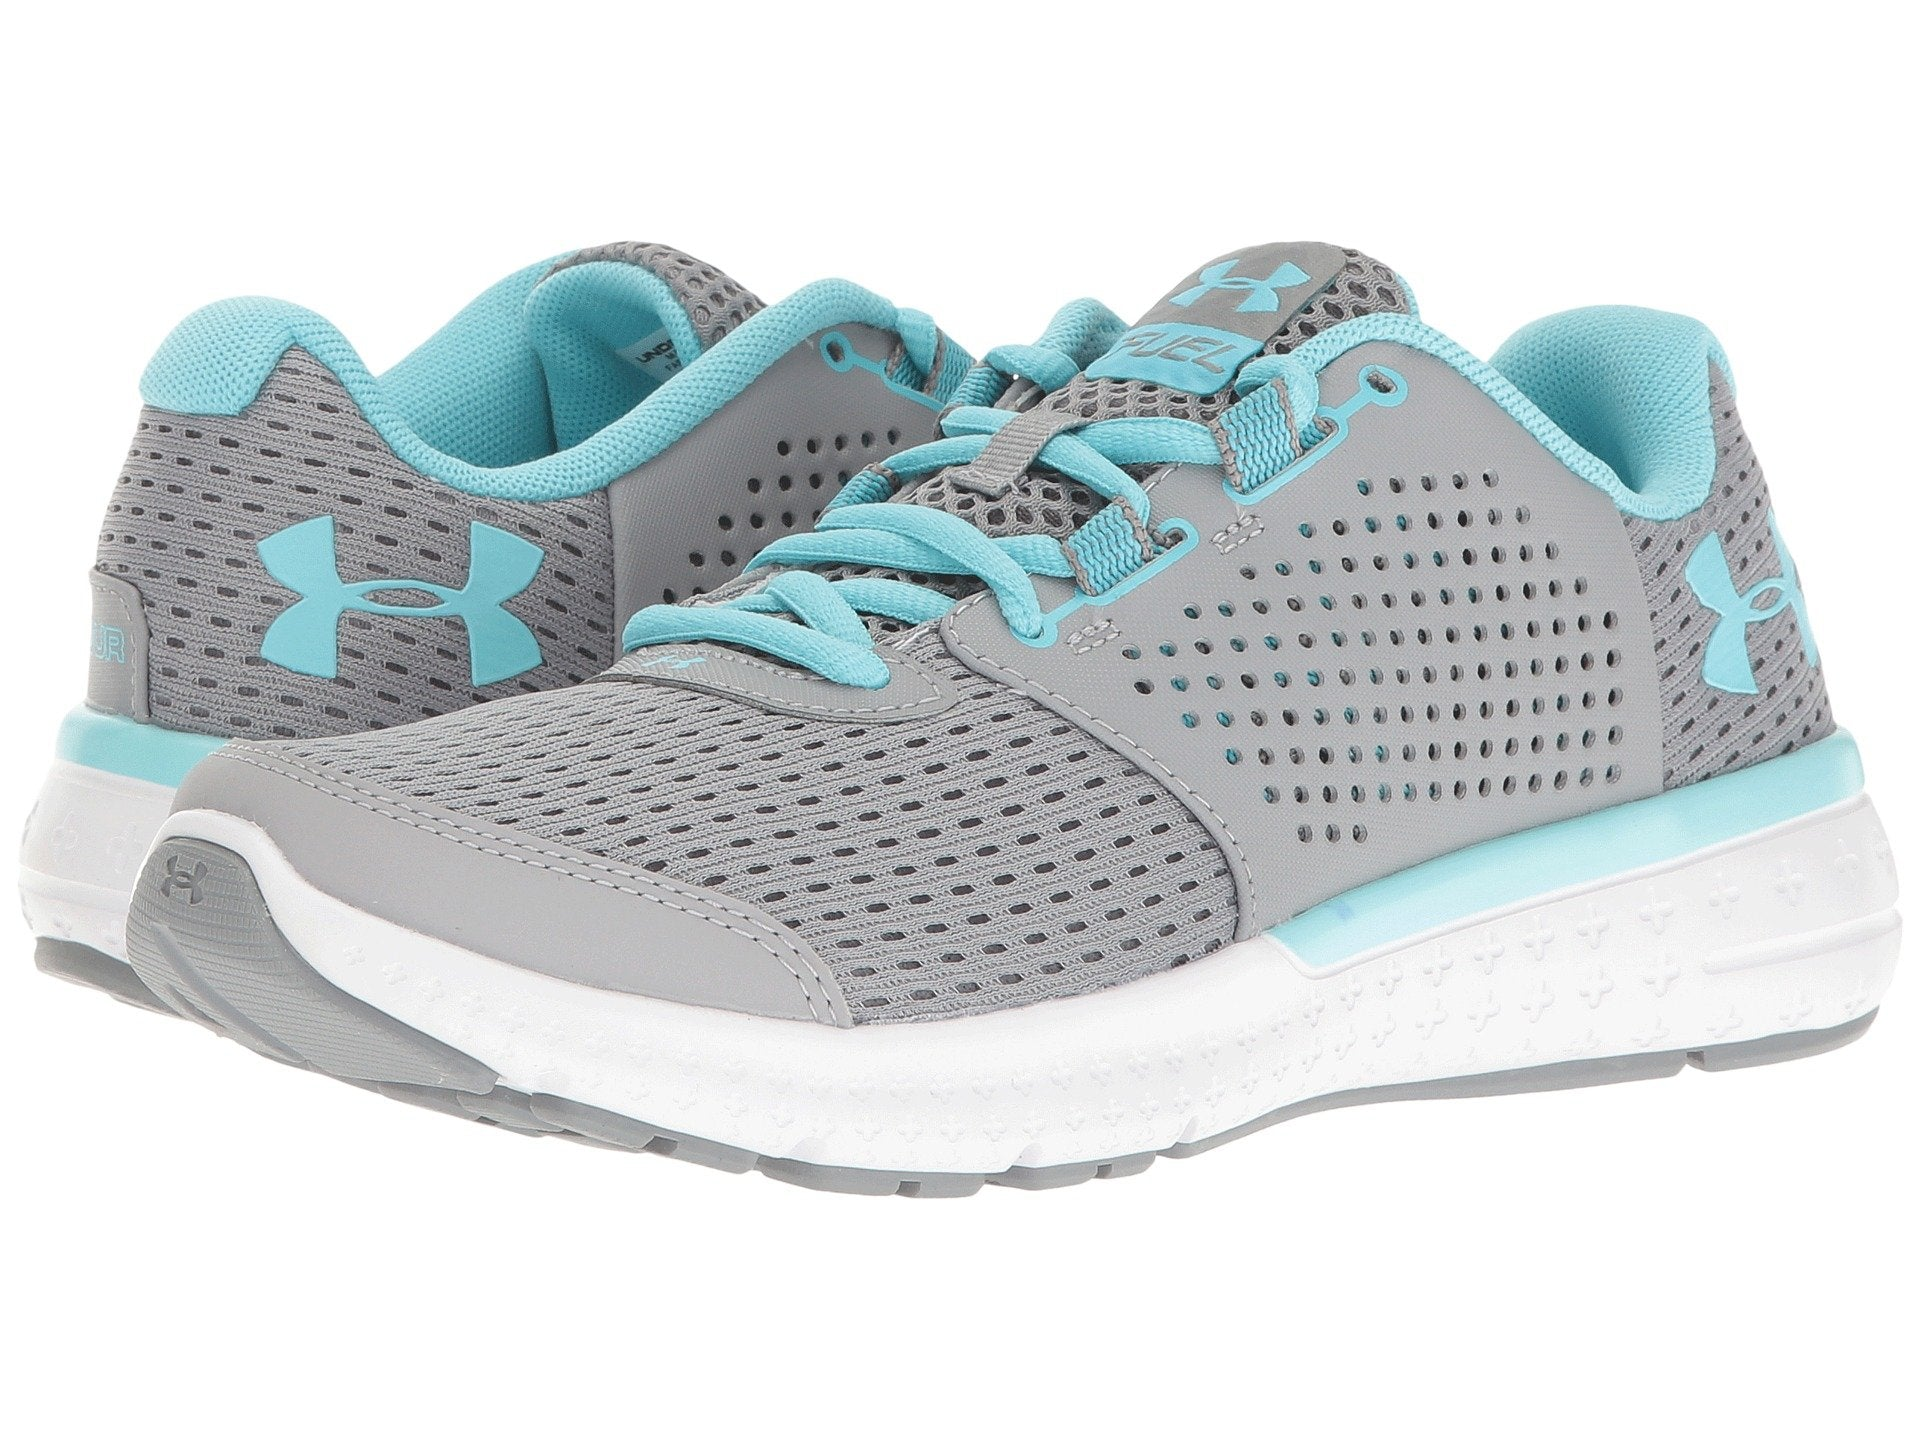 new style 201e0 c88cd Under Armour Women's Micro G Fuel Running Shoes – Shoe World ...